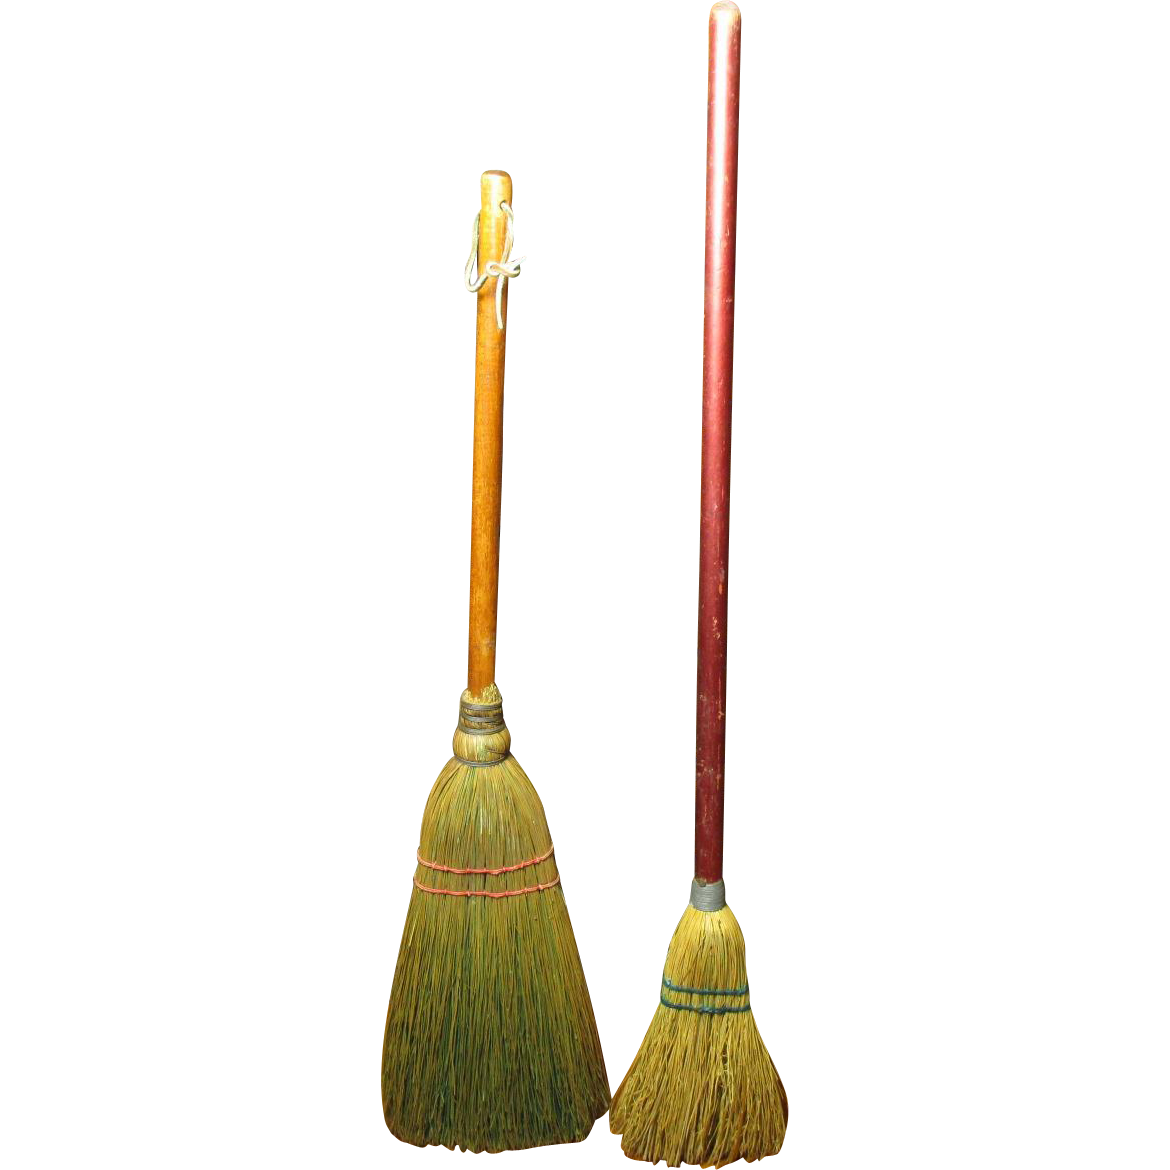 Two Charming Old Small Brooms One Hearth Broom And One